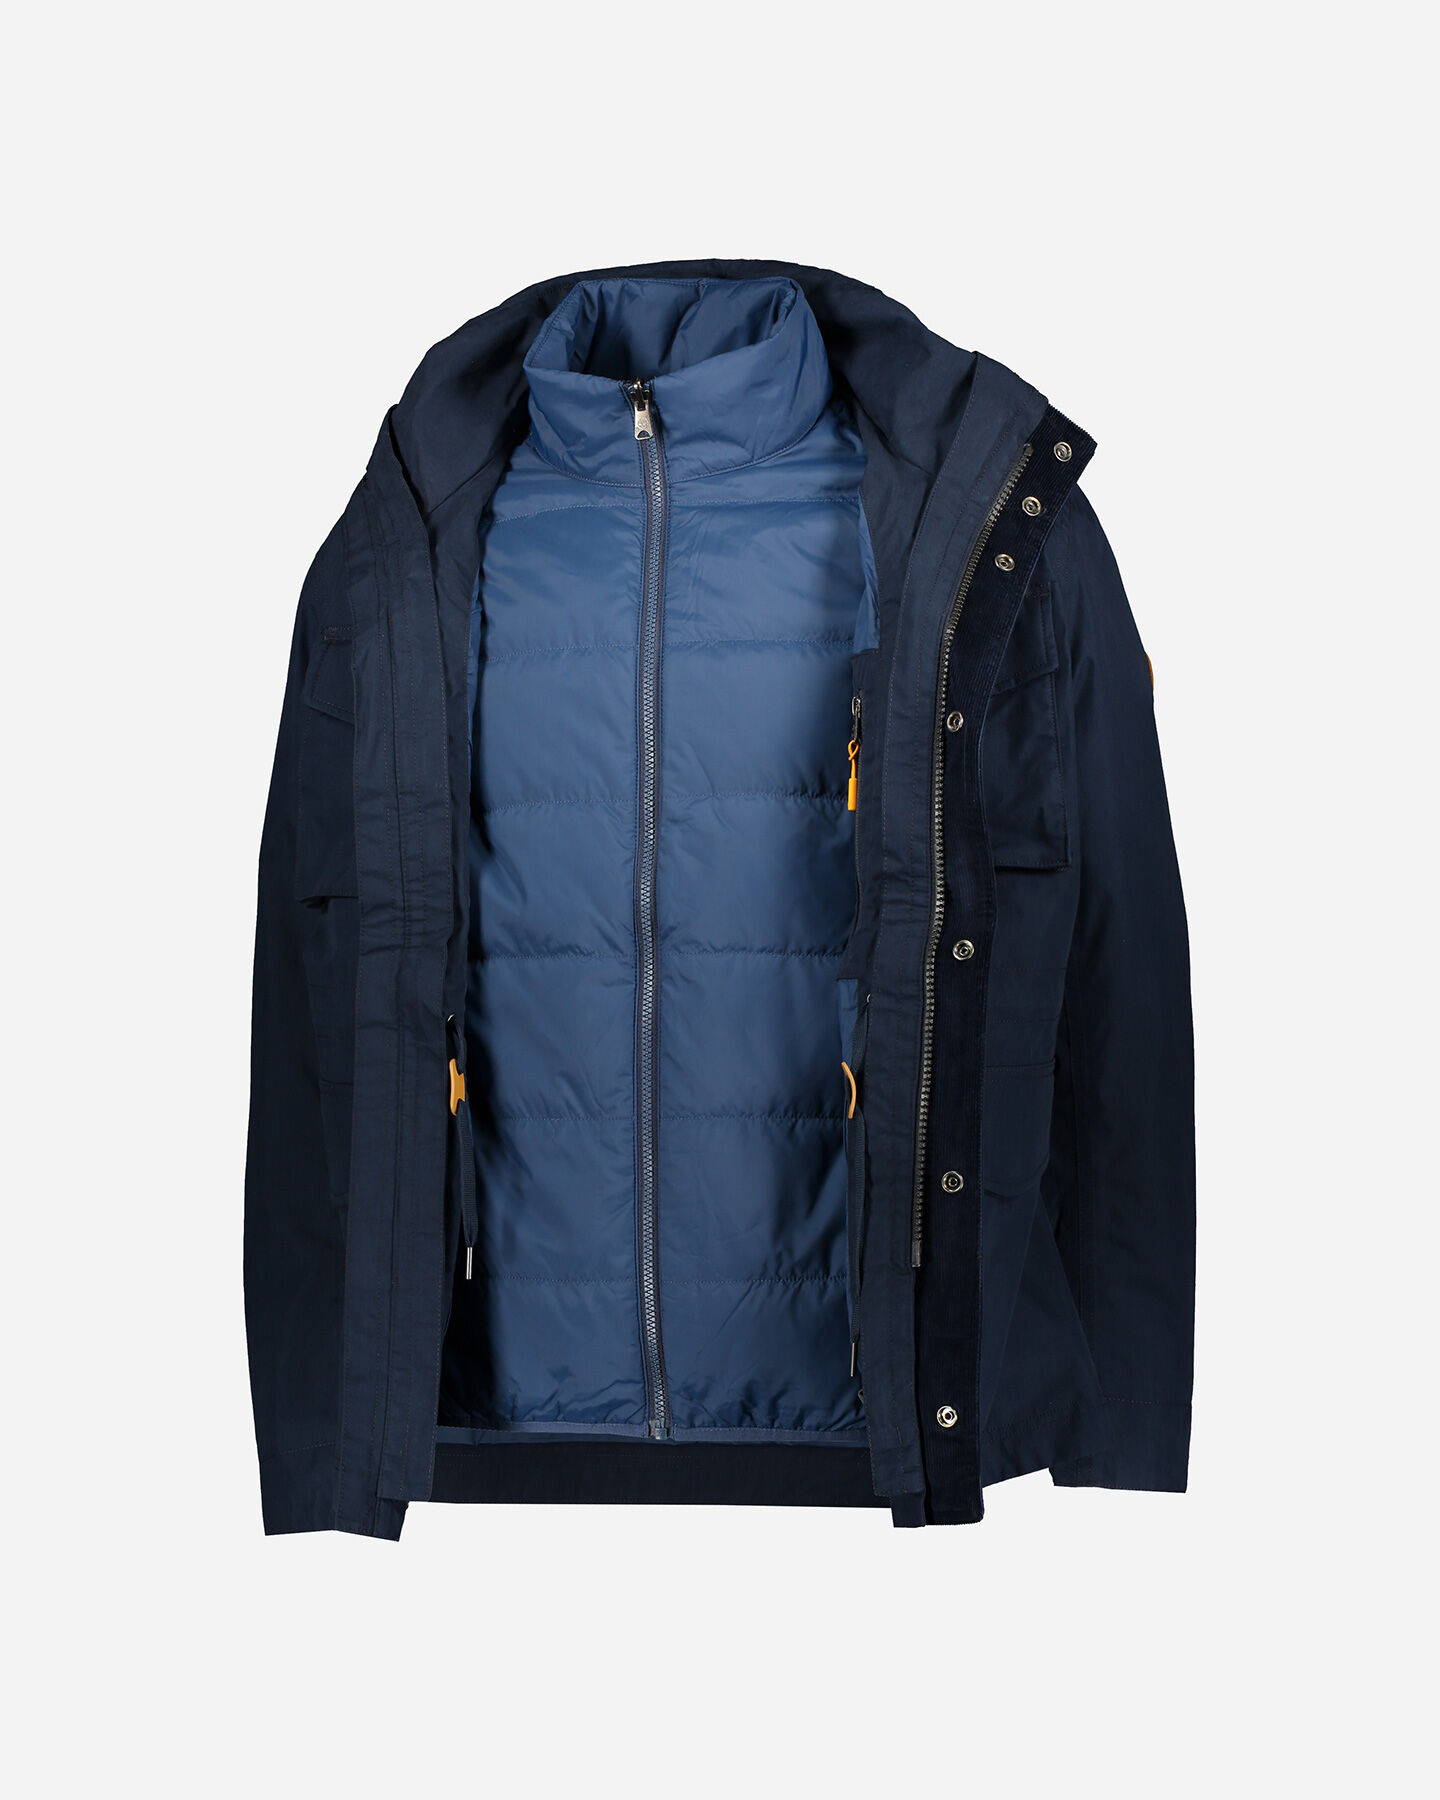 Giacca TIMBERLAND PEAK 3IN1  M S4083658 scatto 1